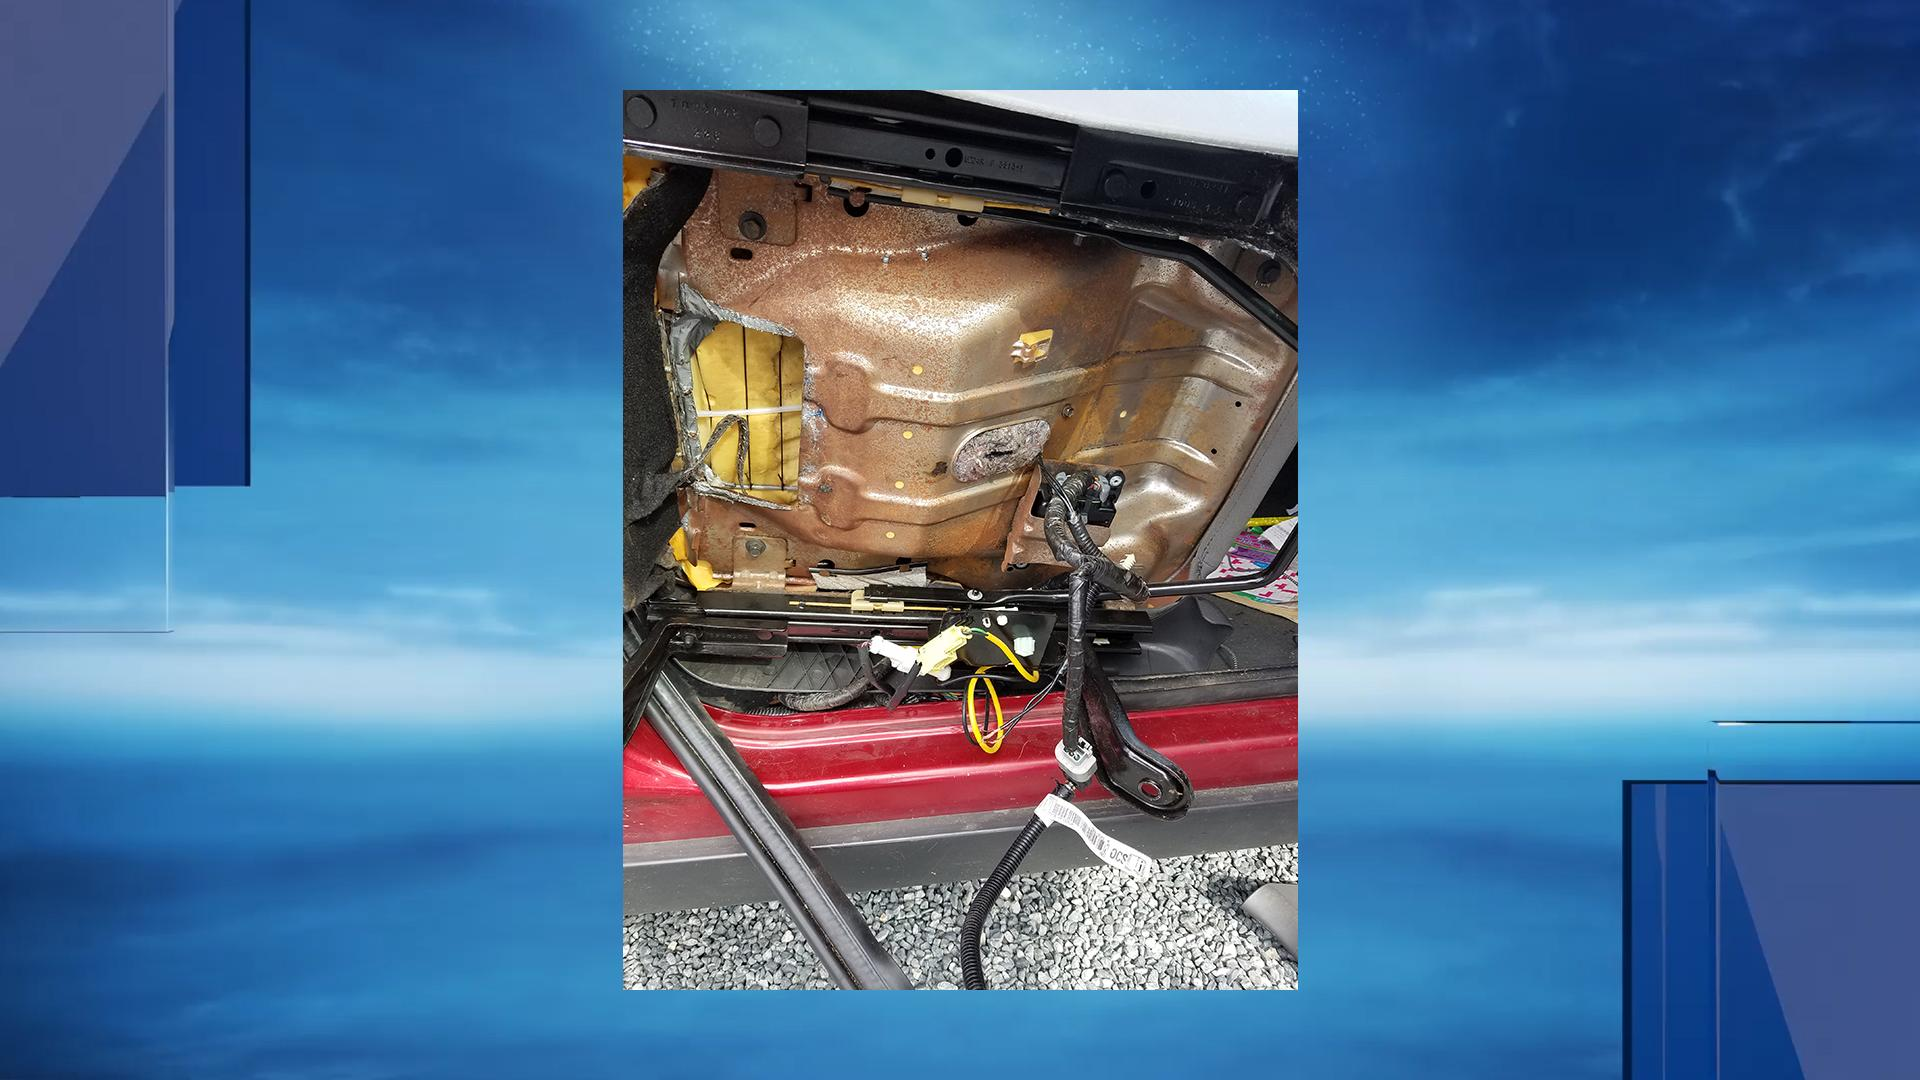 Portsmouth police arrested a woman they say was hiding drugs in the compartment of a car. (Portsmouth Police Department)